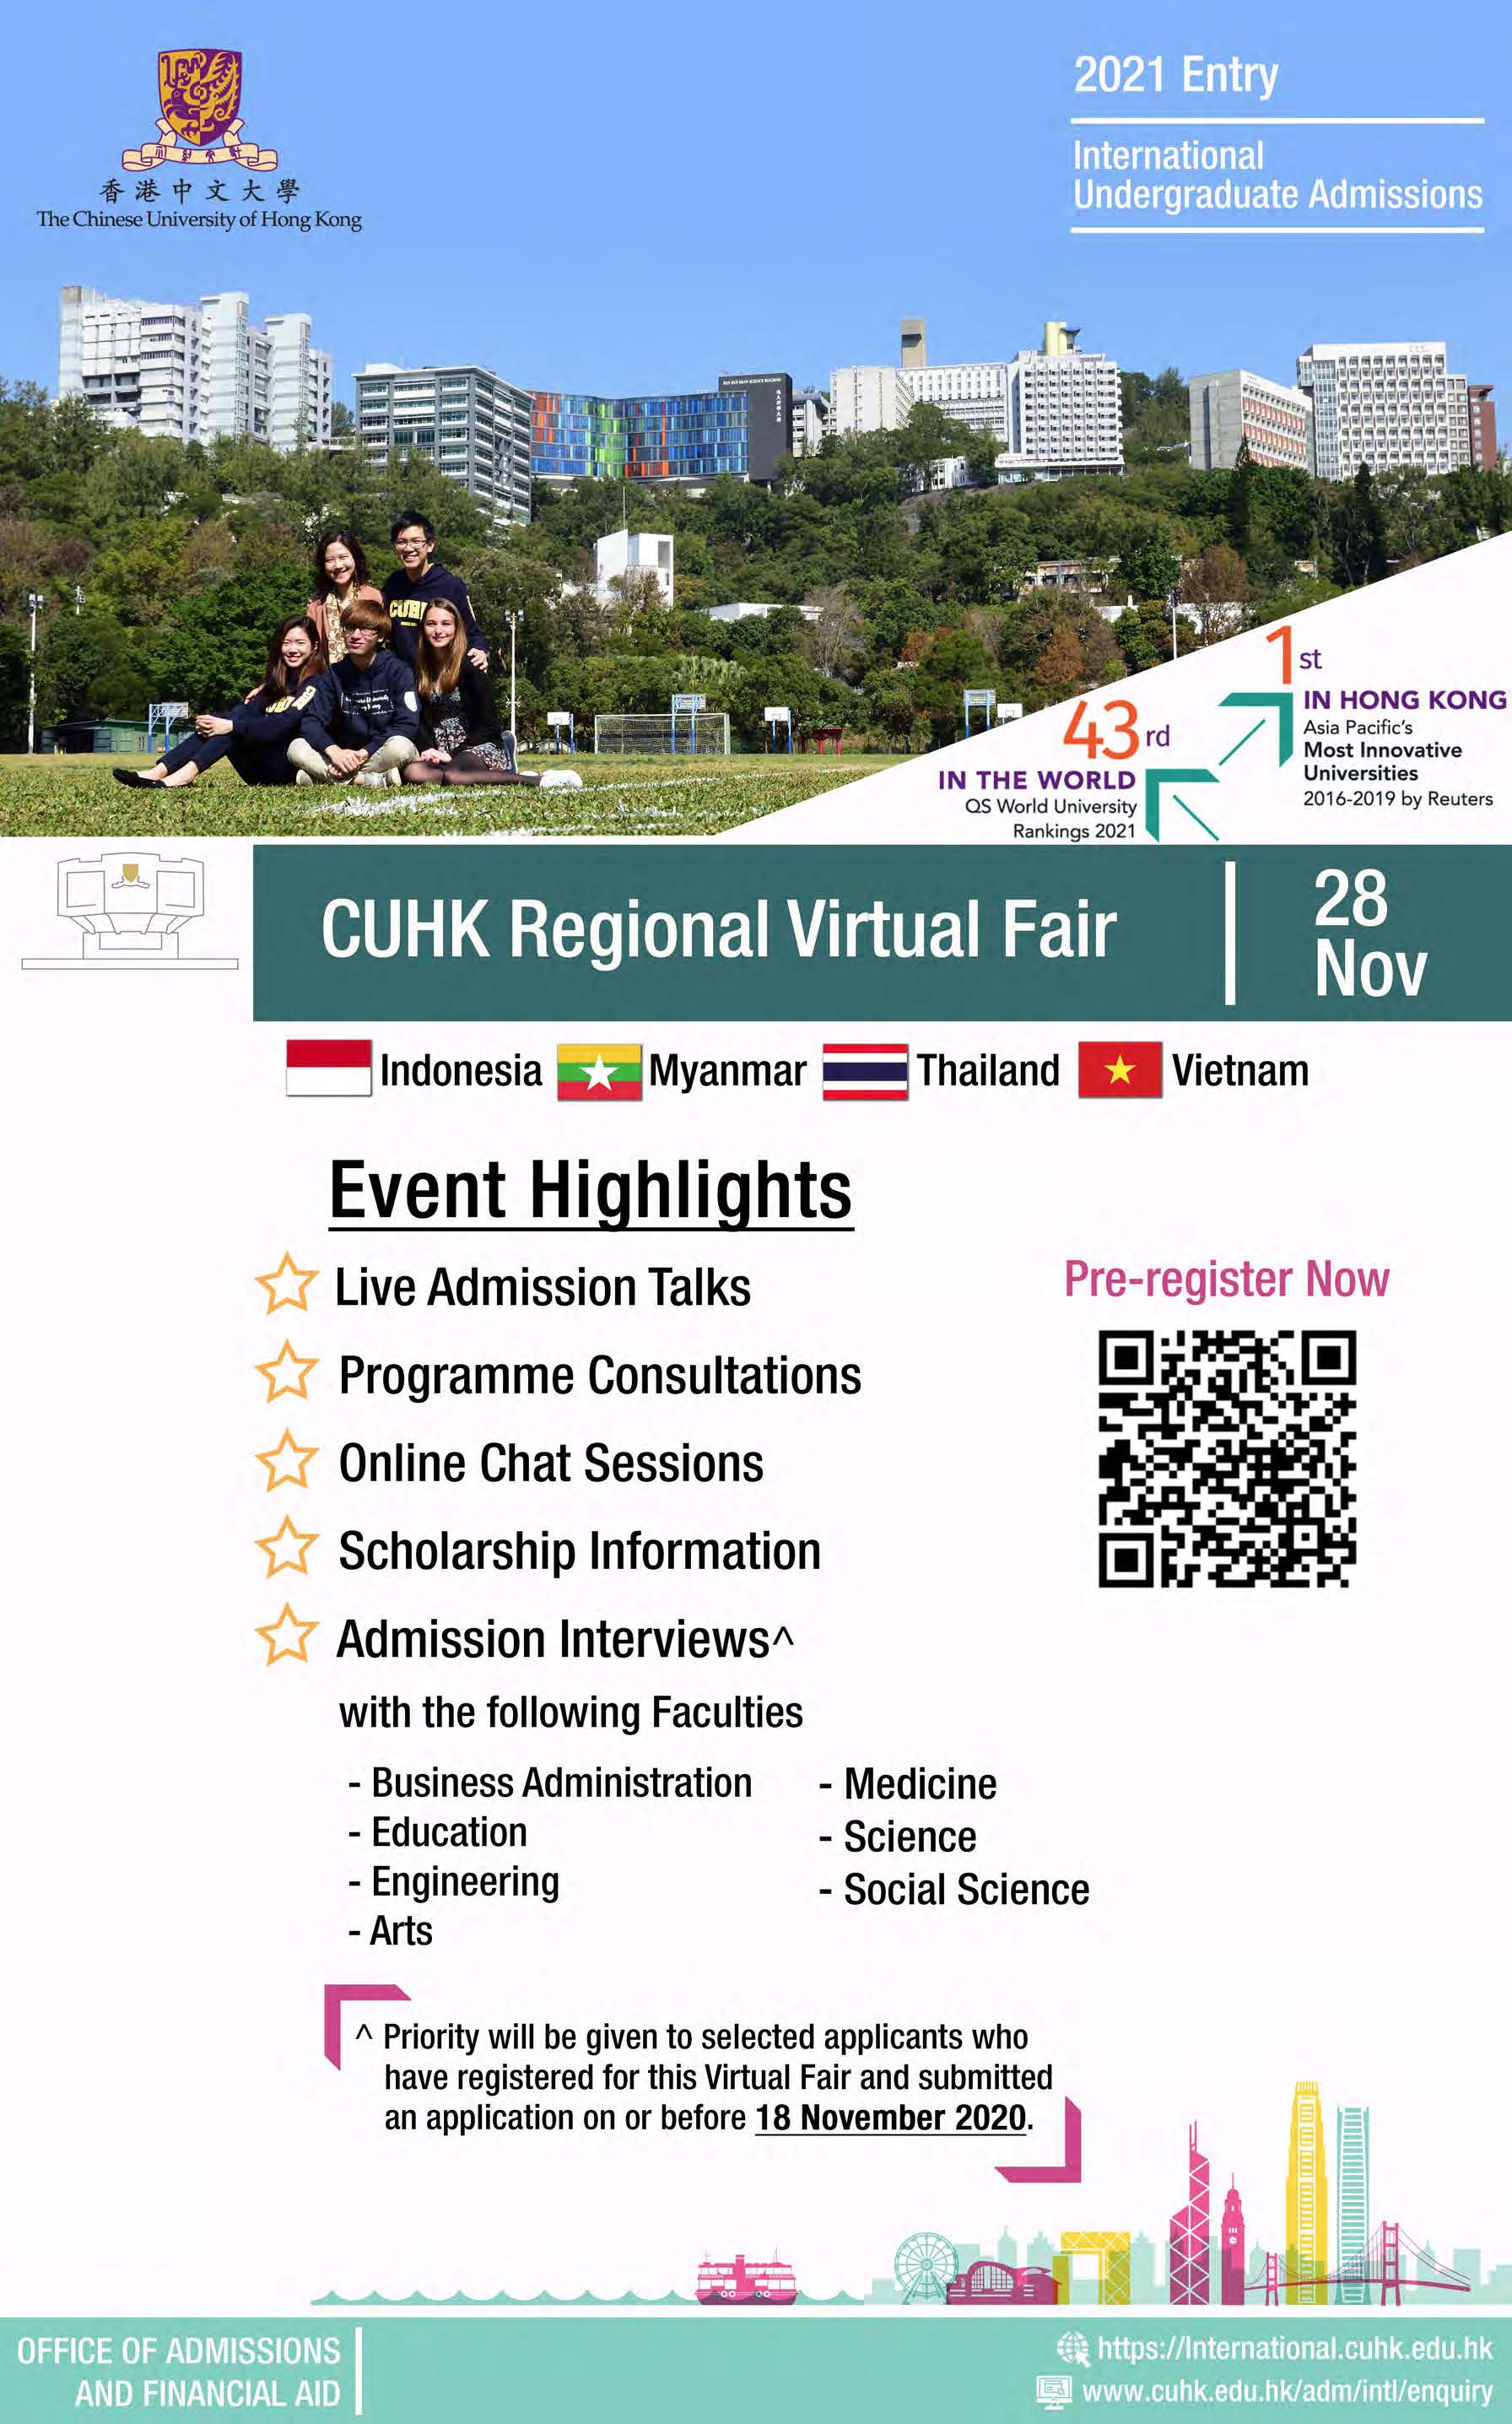 CUHK Regional Virtual Fair Nov